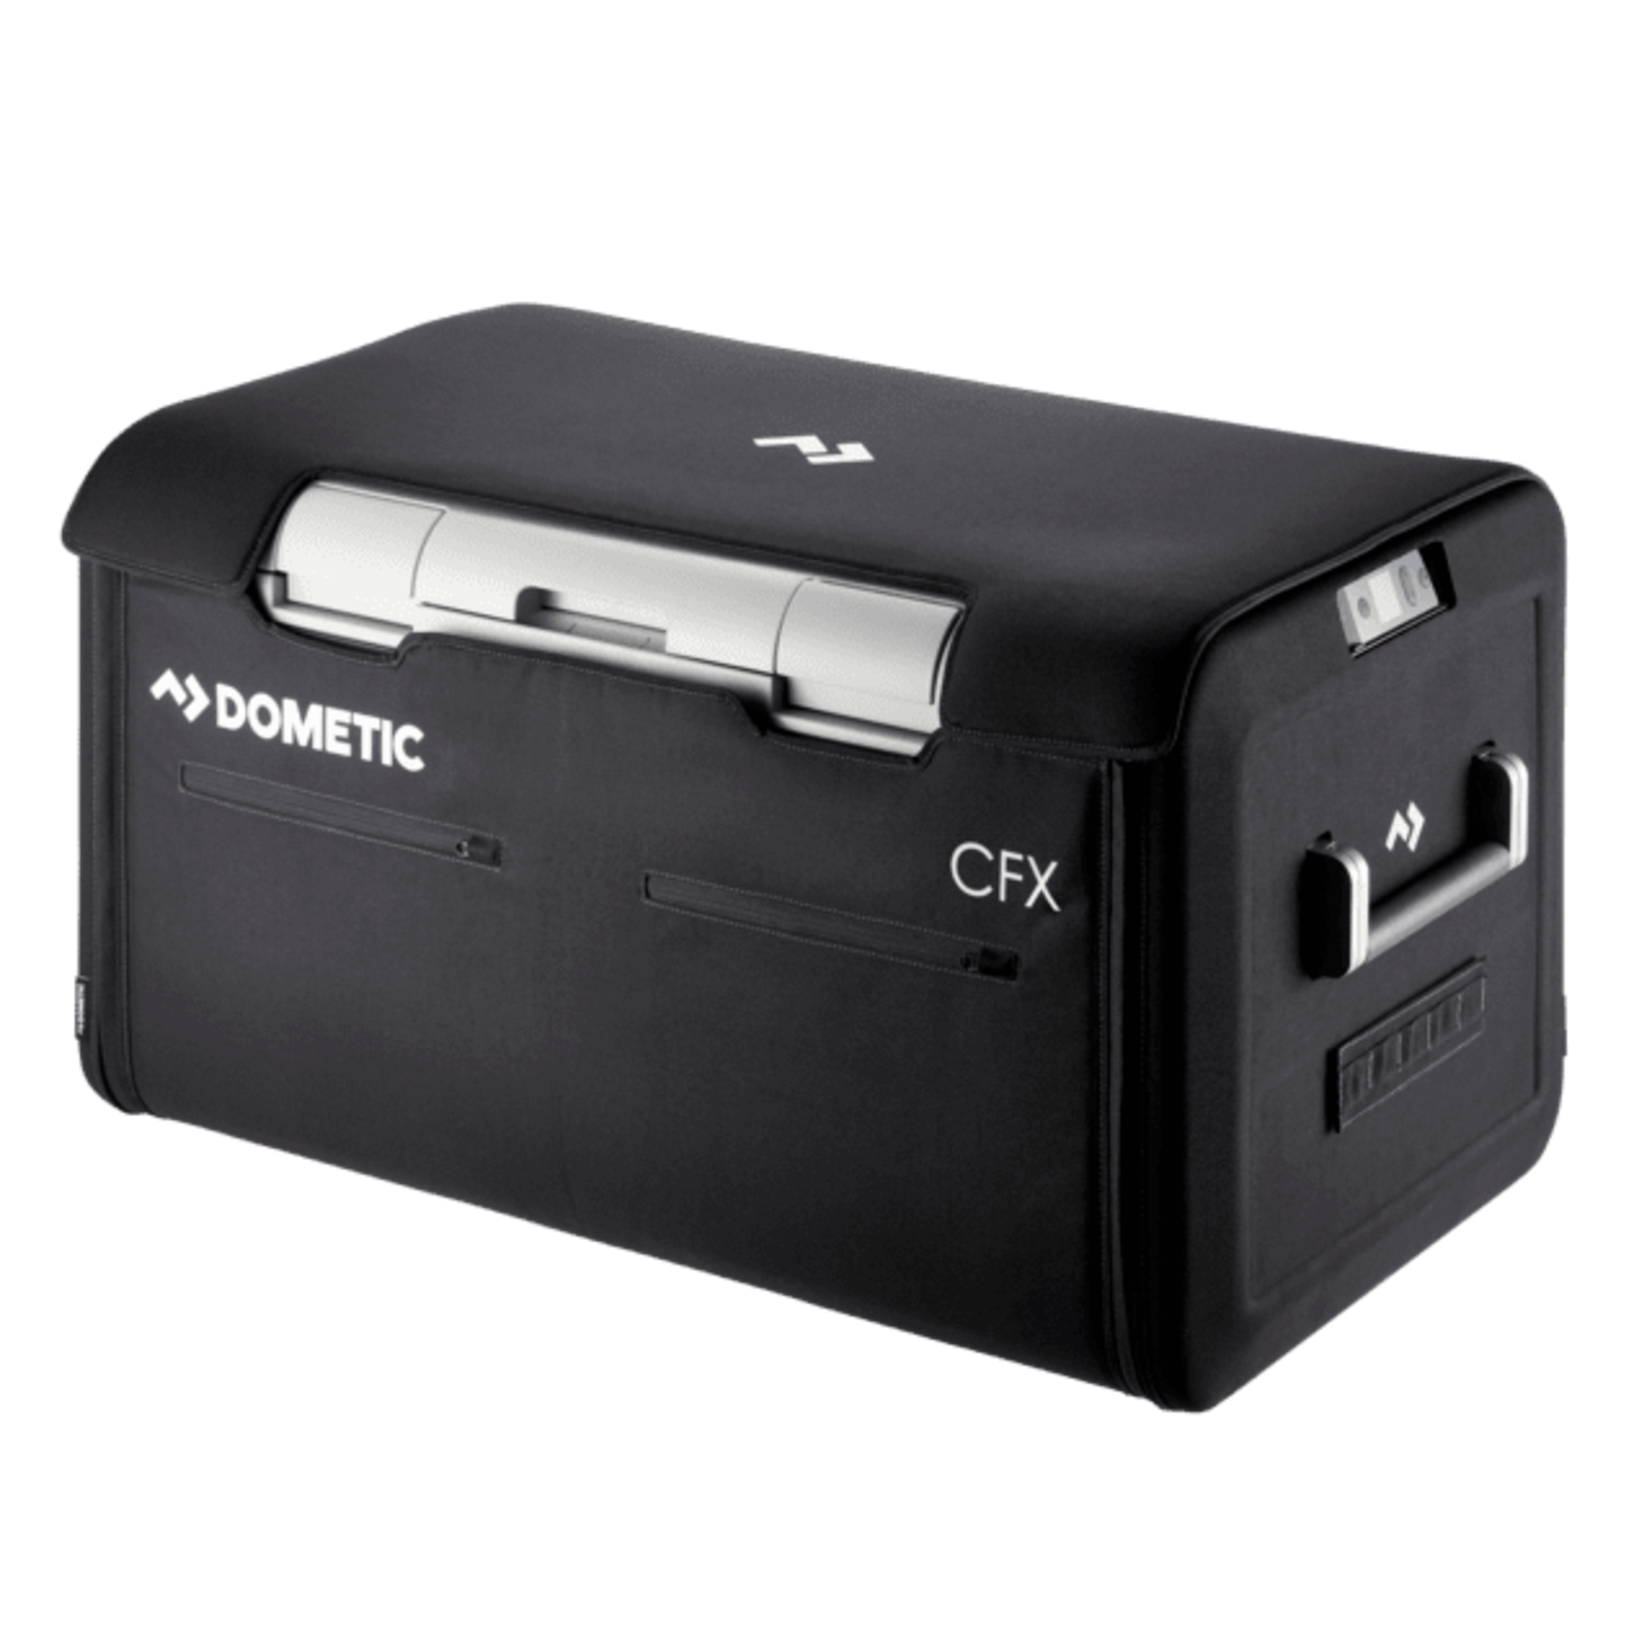 Dometic Dometic CFX3 Protective Cover